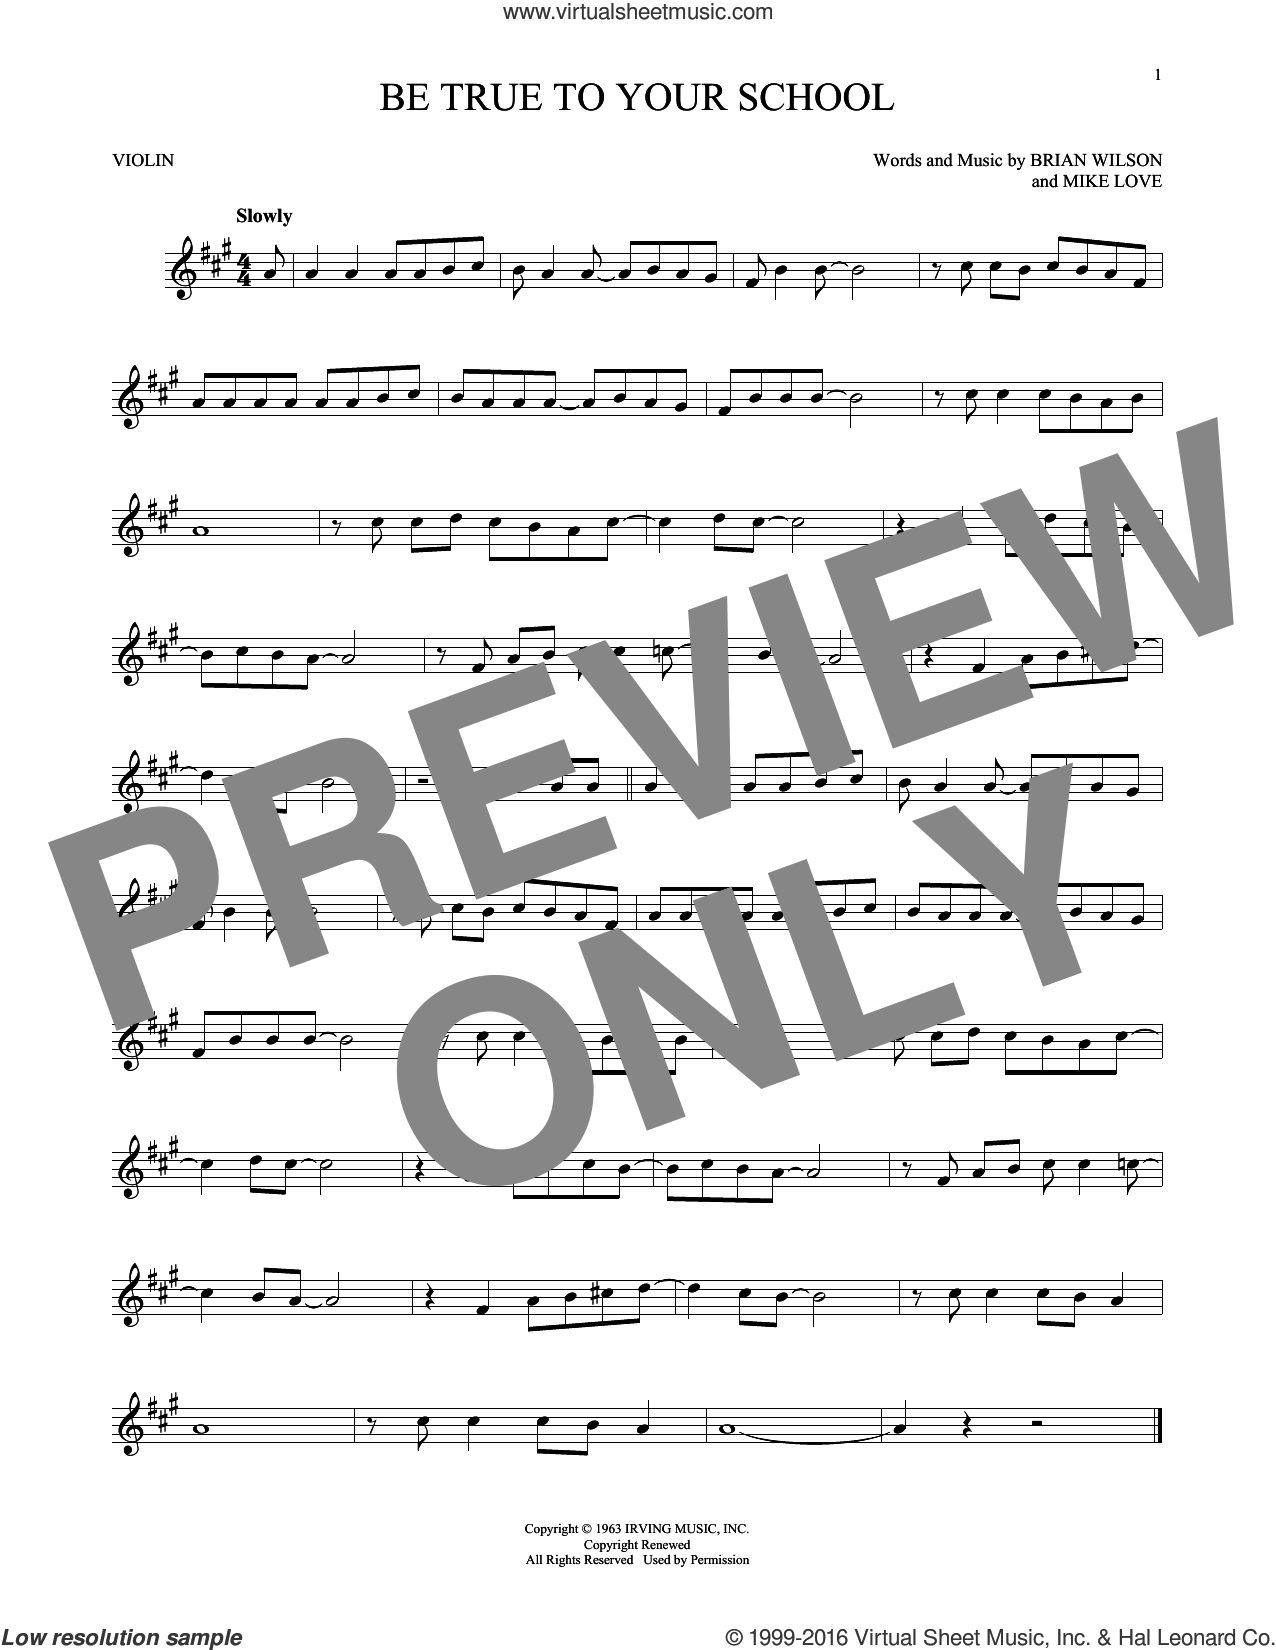 Be True To Your School sheet music for violin solo by The Beach Boys, Brian Wilson and Mike Love, intermediate skill level